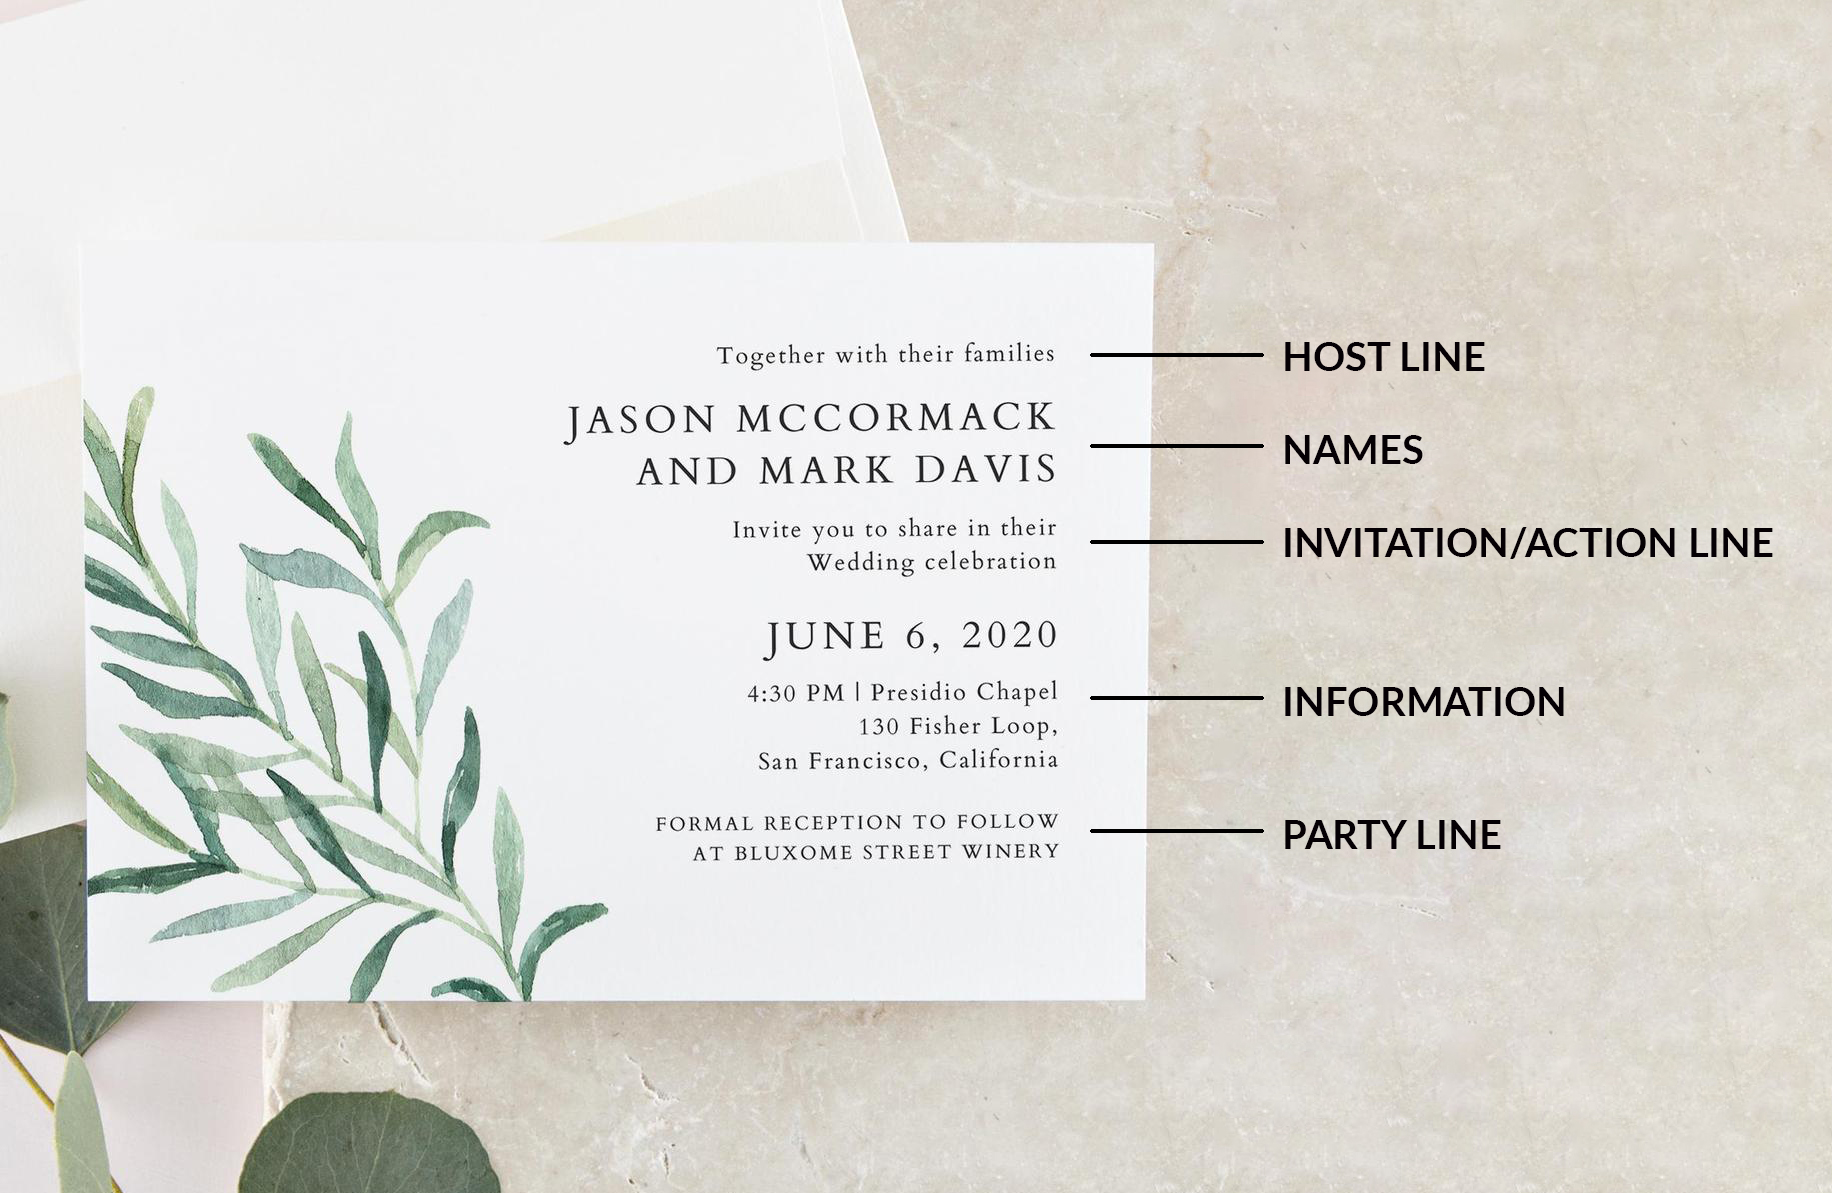 Wedding Card Invitation Messages: Wedding Invitation Wording Examples In Every Style